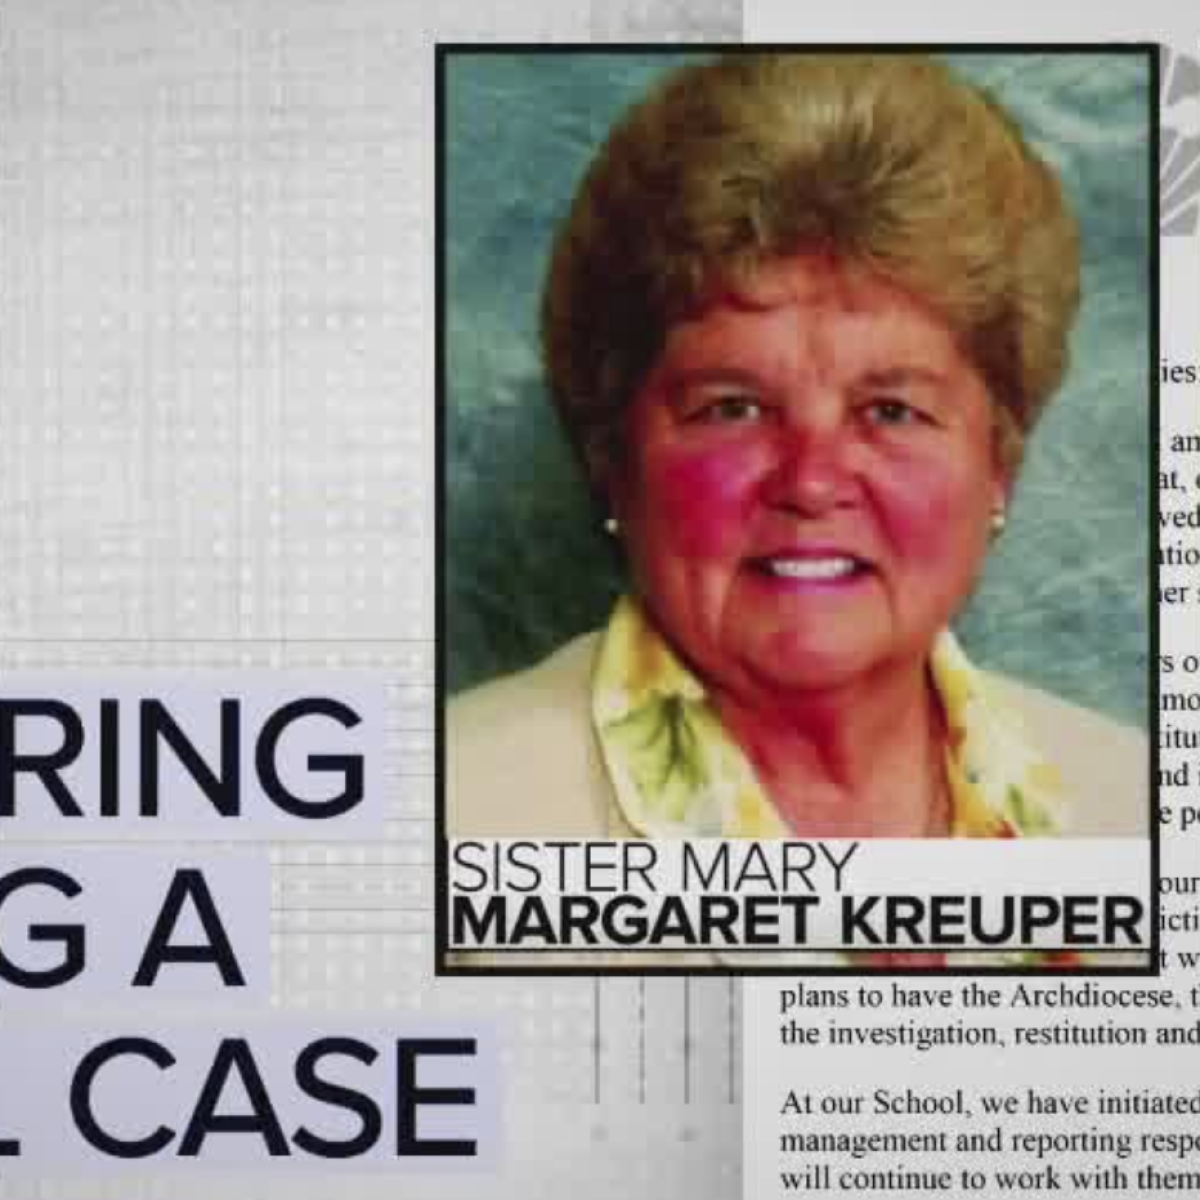 Nuns accused of stealing may have gambled money